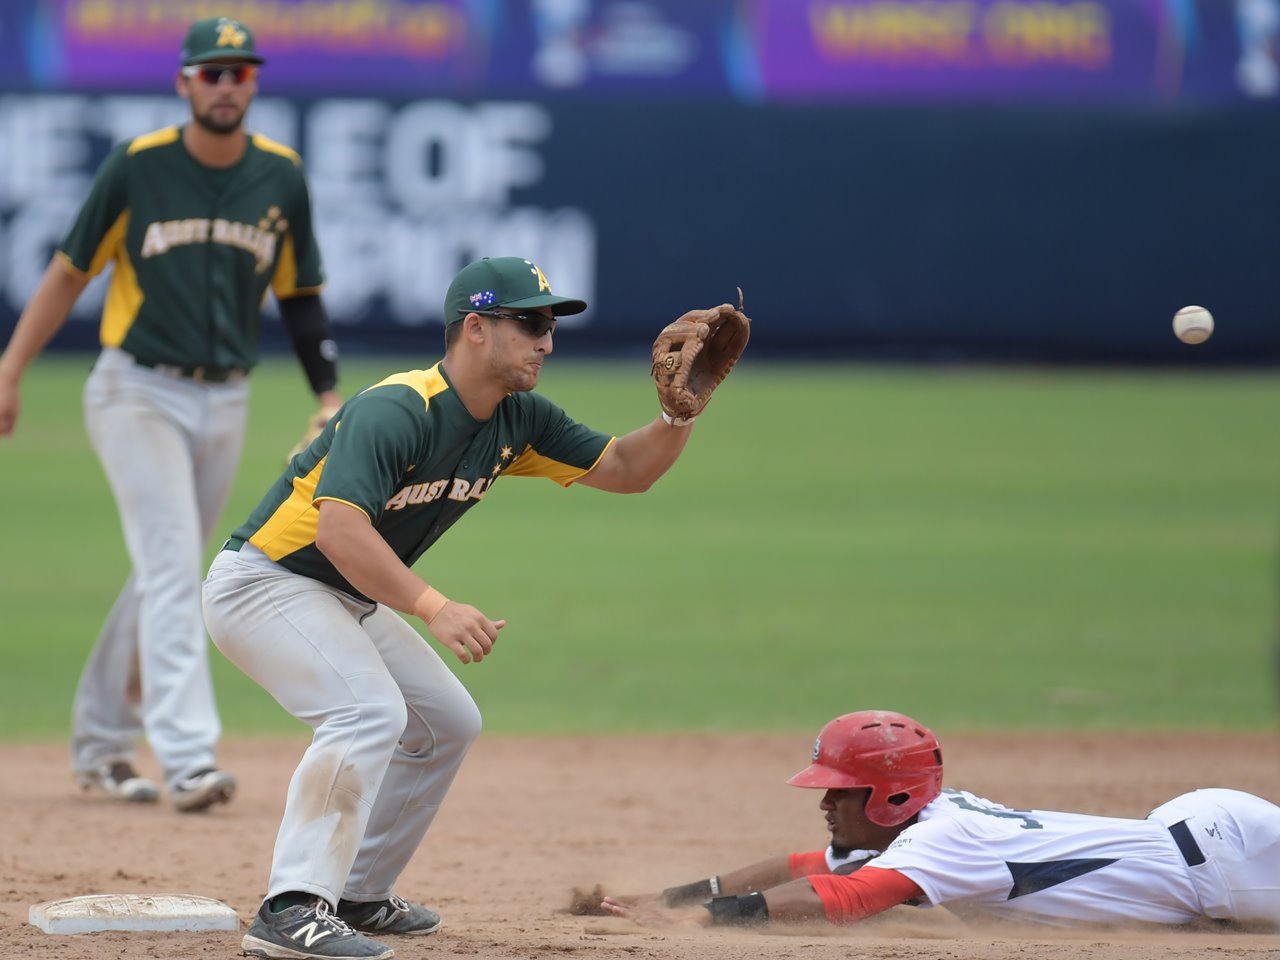 Oceania qualifier sites announced for WBSC U-15 and U-23 Baseball World Cups in 2018